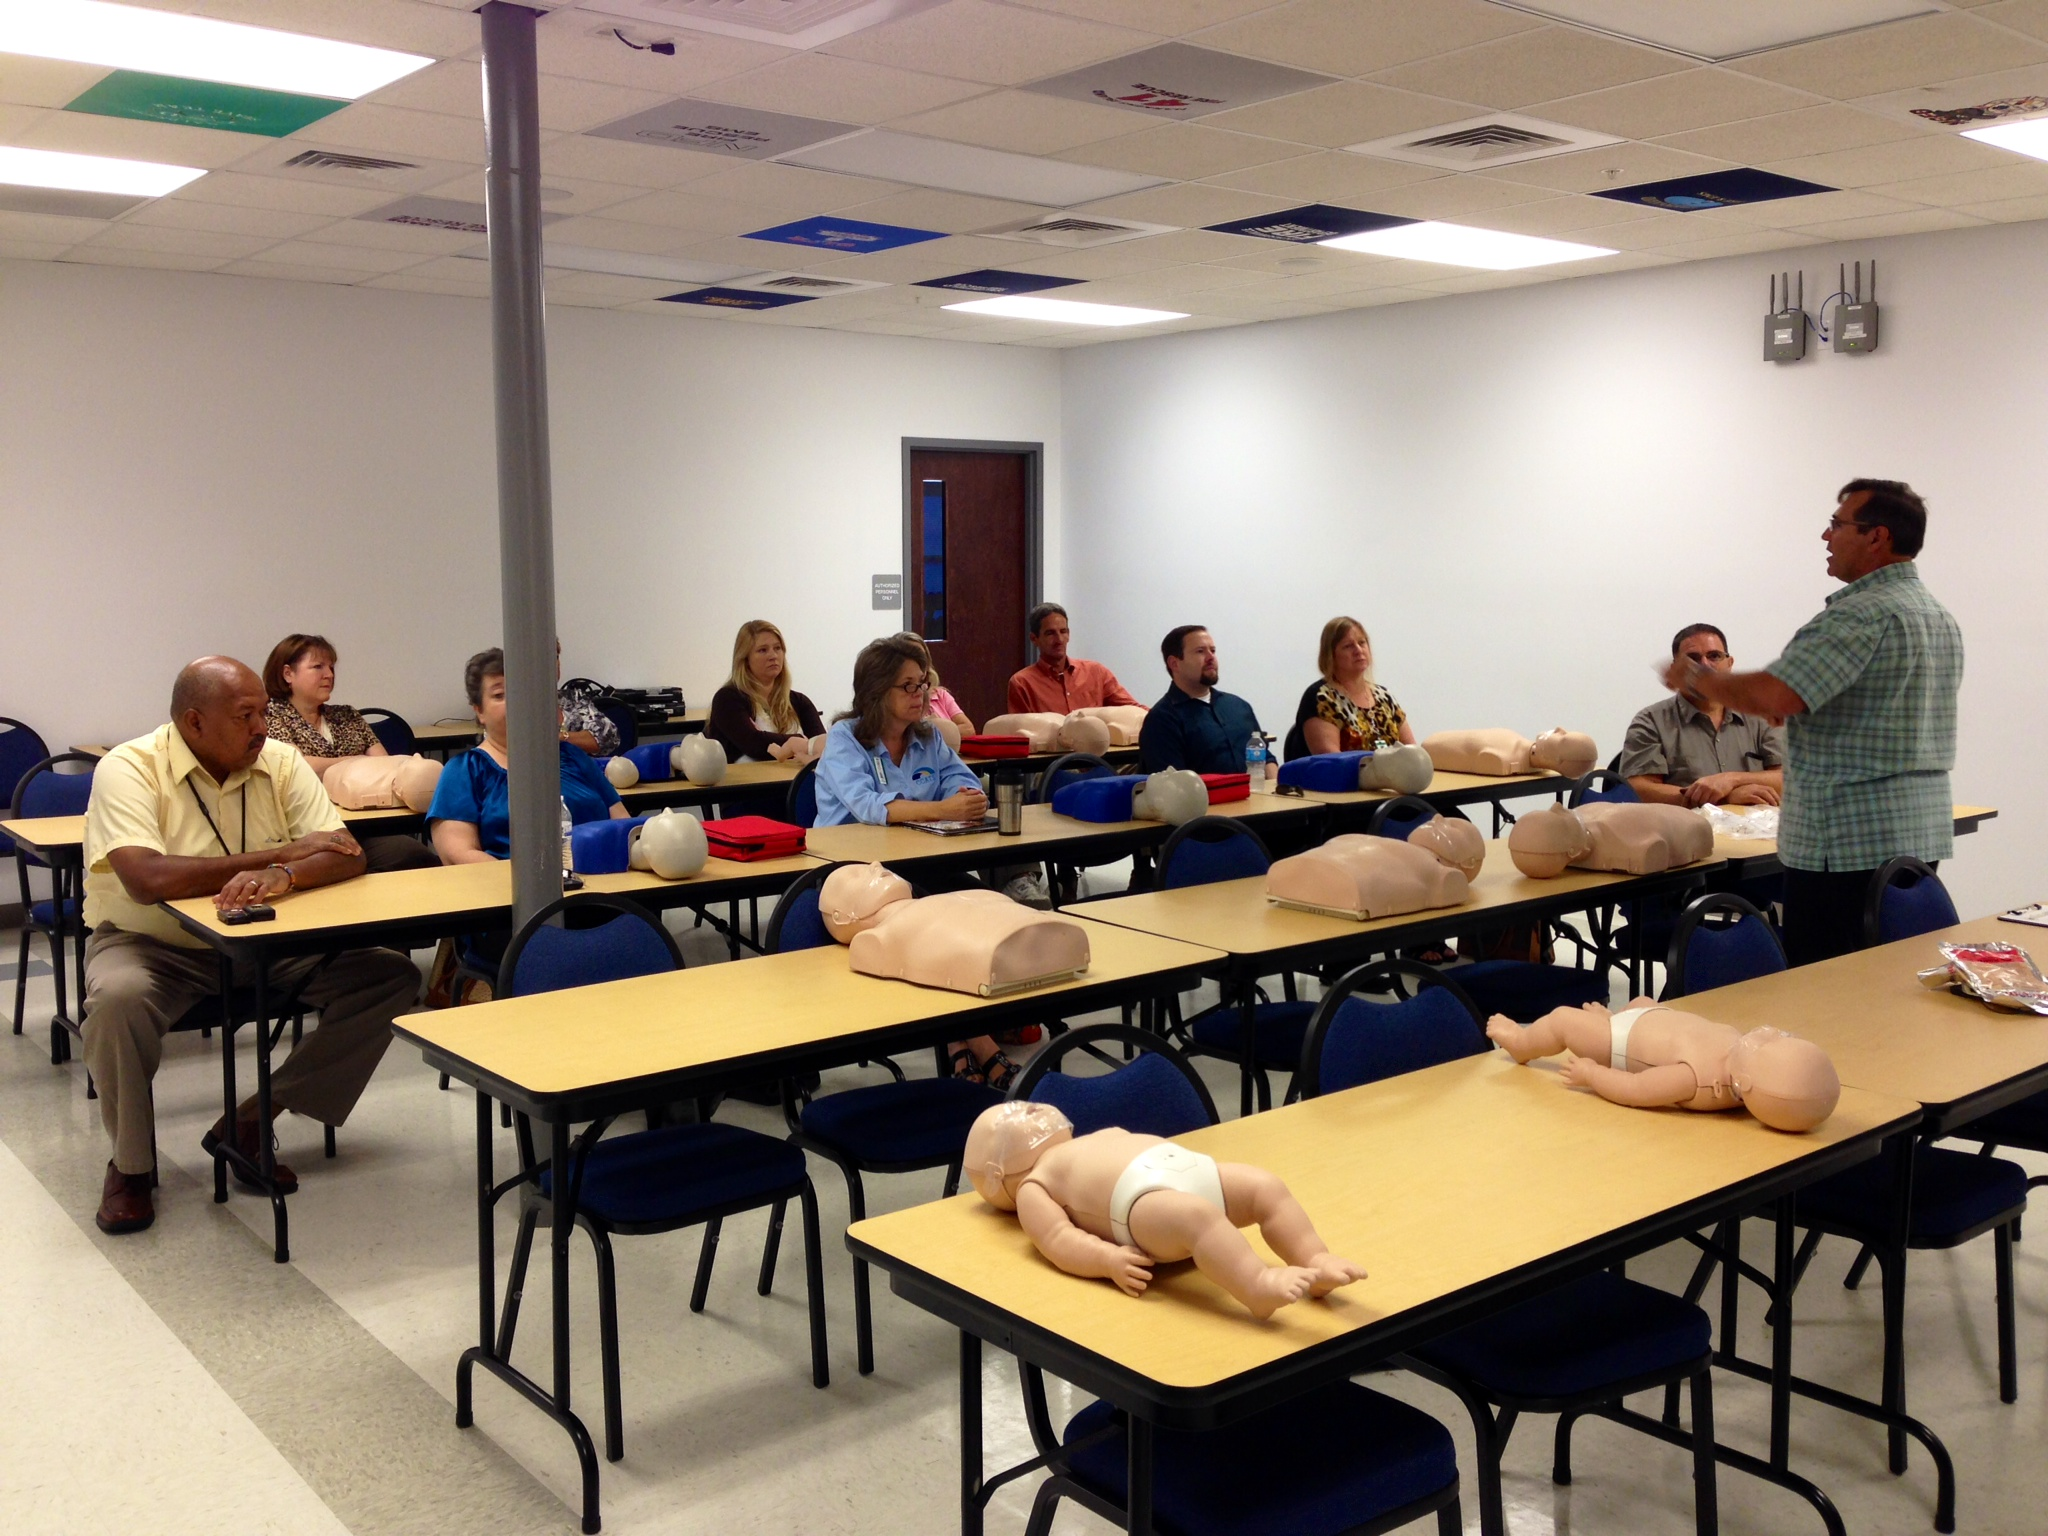 CPR/AED Training 08